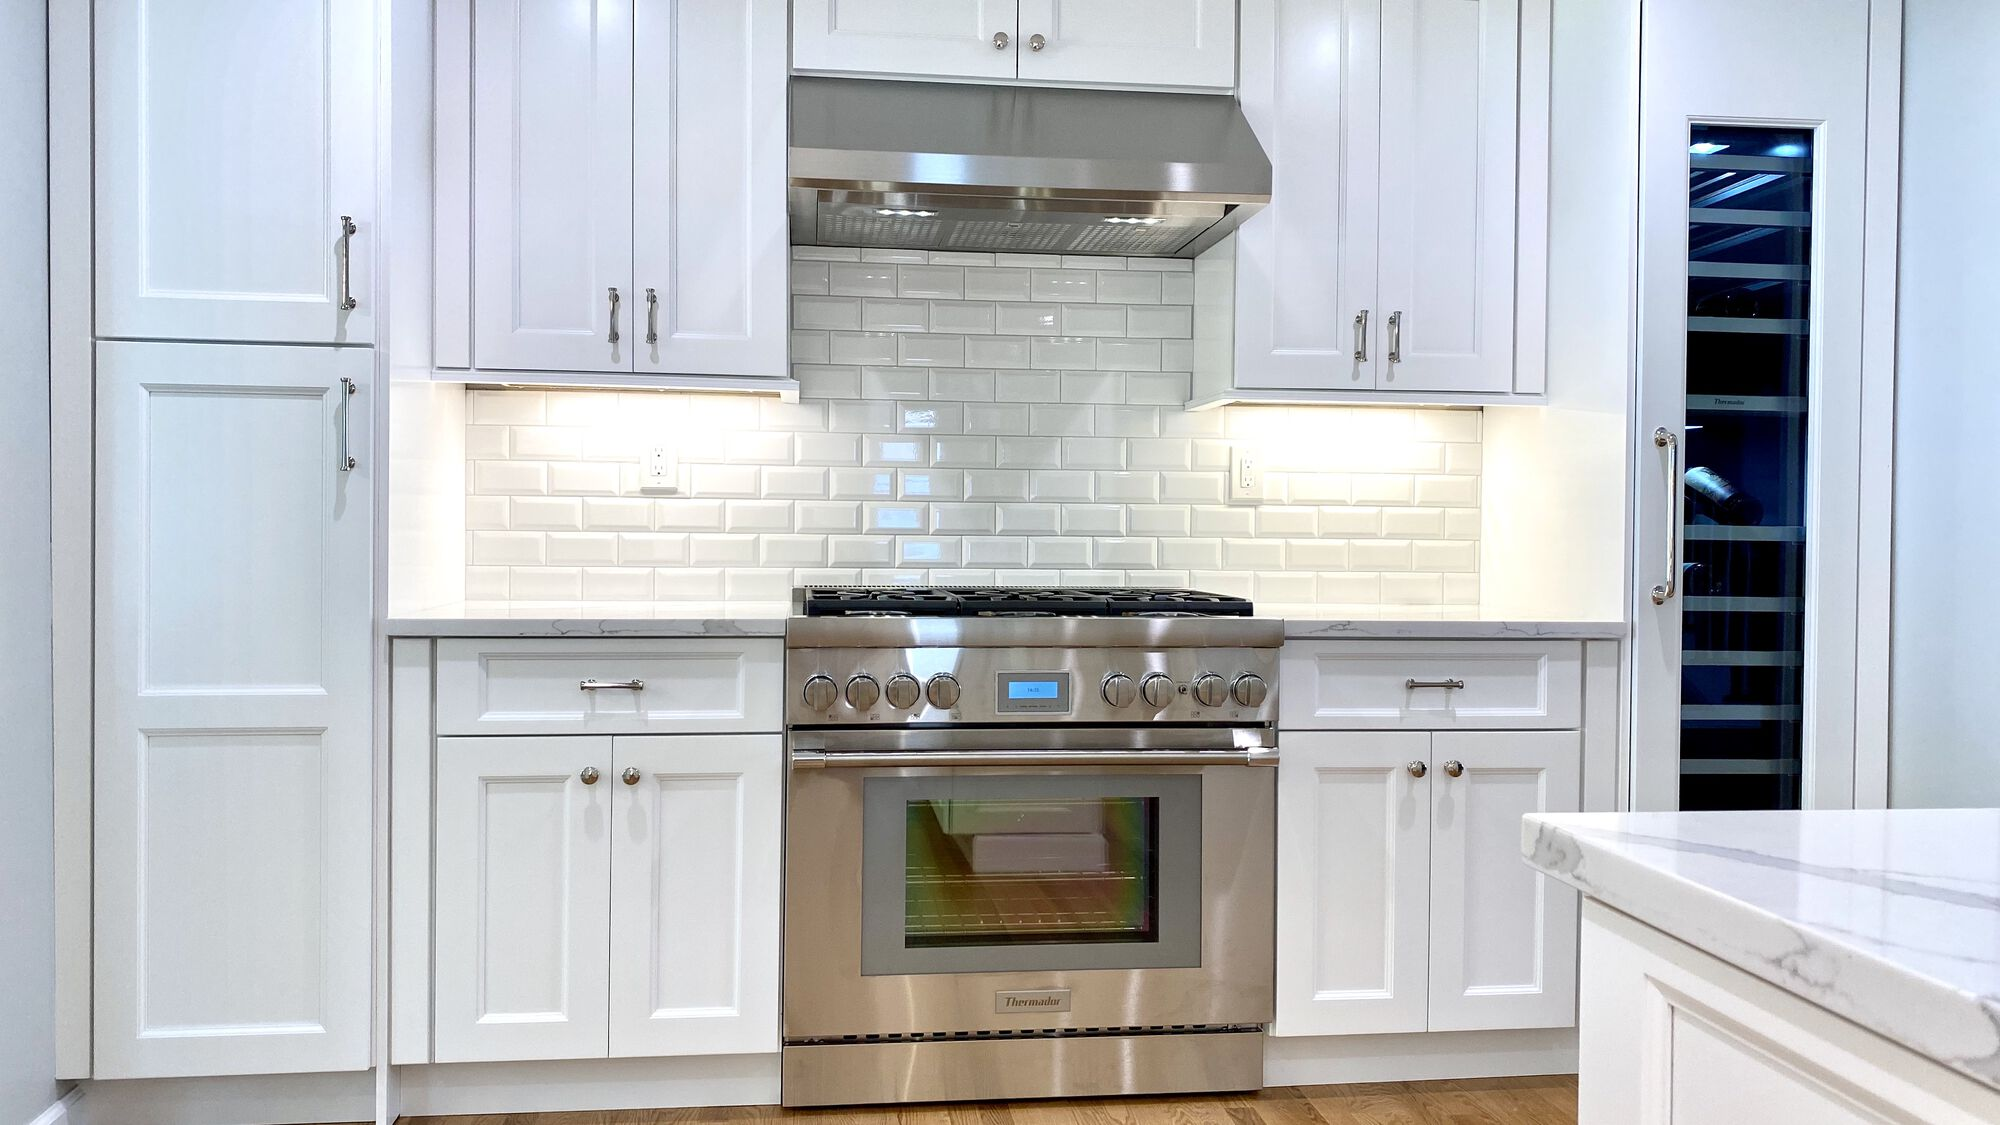 Kitchen with Shaker Cabinets, Thermador Appliances, Stone Countertops, Subway Tile Backsplash and Wood Floors in Cranford, Union County NJ